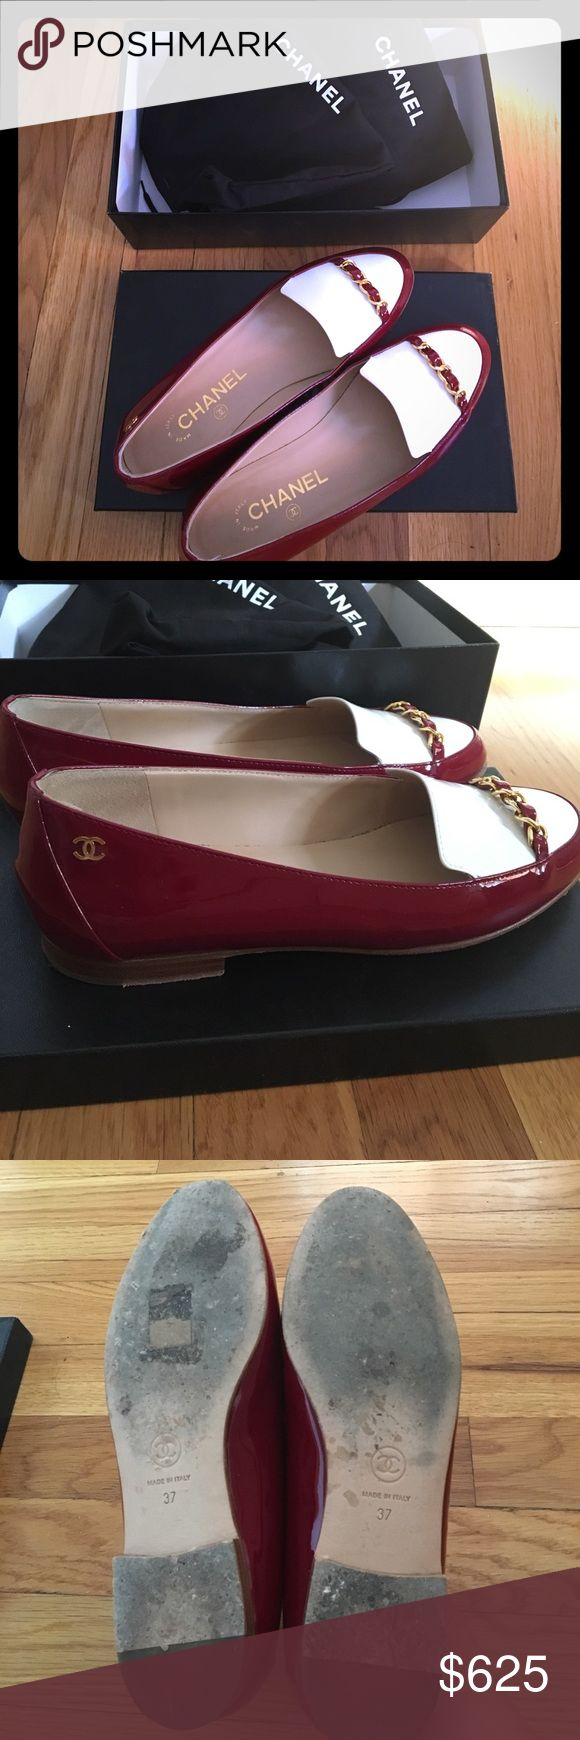 chanel loafers authentic chanel patent leather loafers in very good condition the only wears are